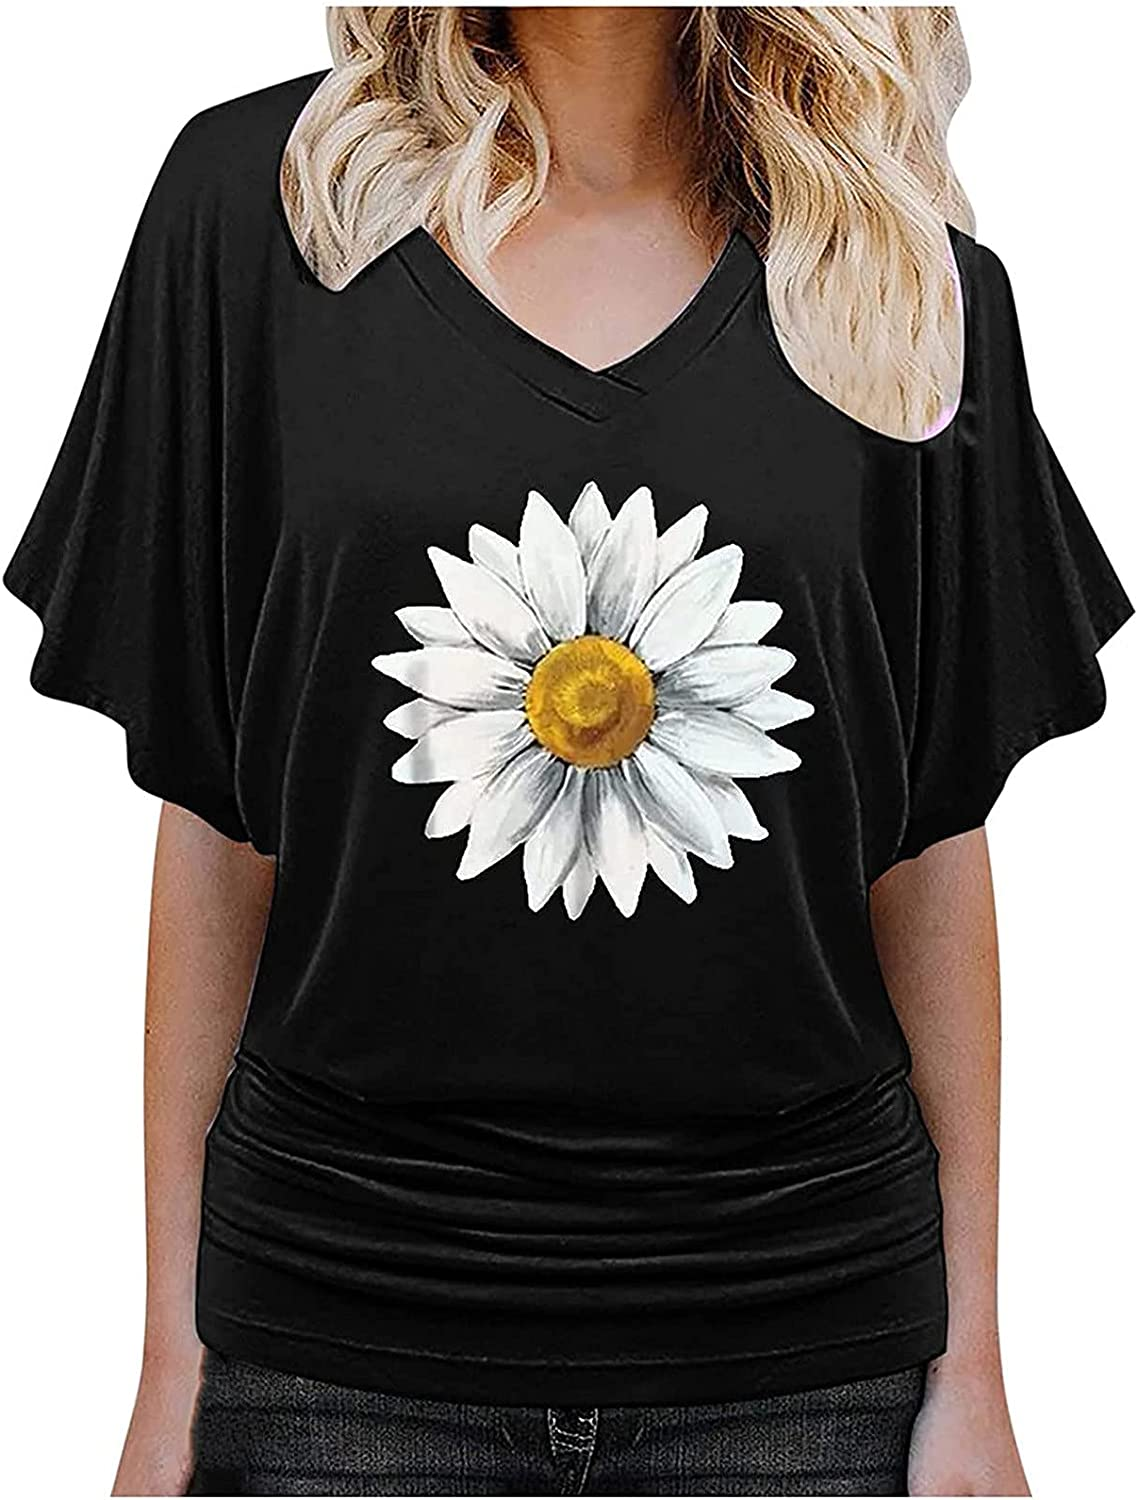 Women's Blouse Tops Fashion 3D Printed Floral Shirt V-Neck Loose Short Sleeve T-Shirt Pullover Tops